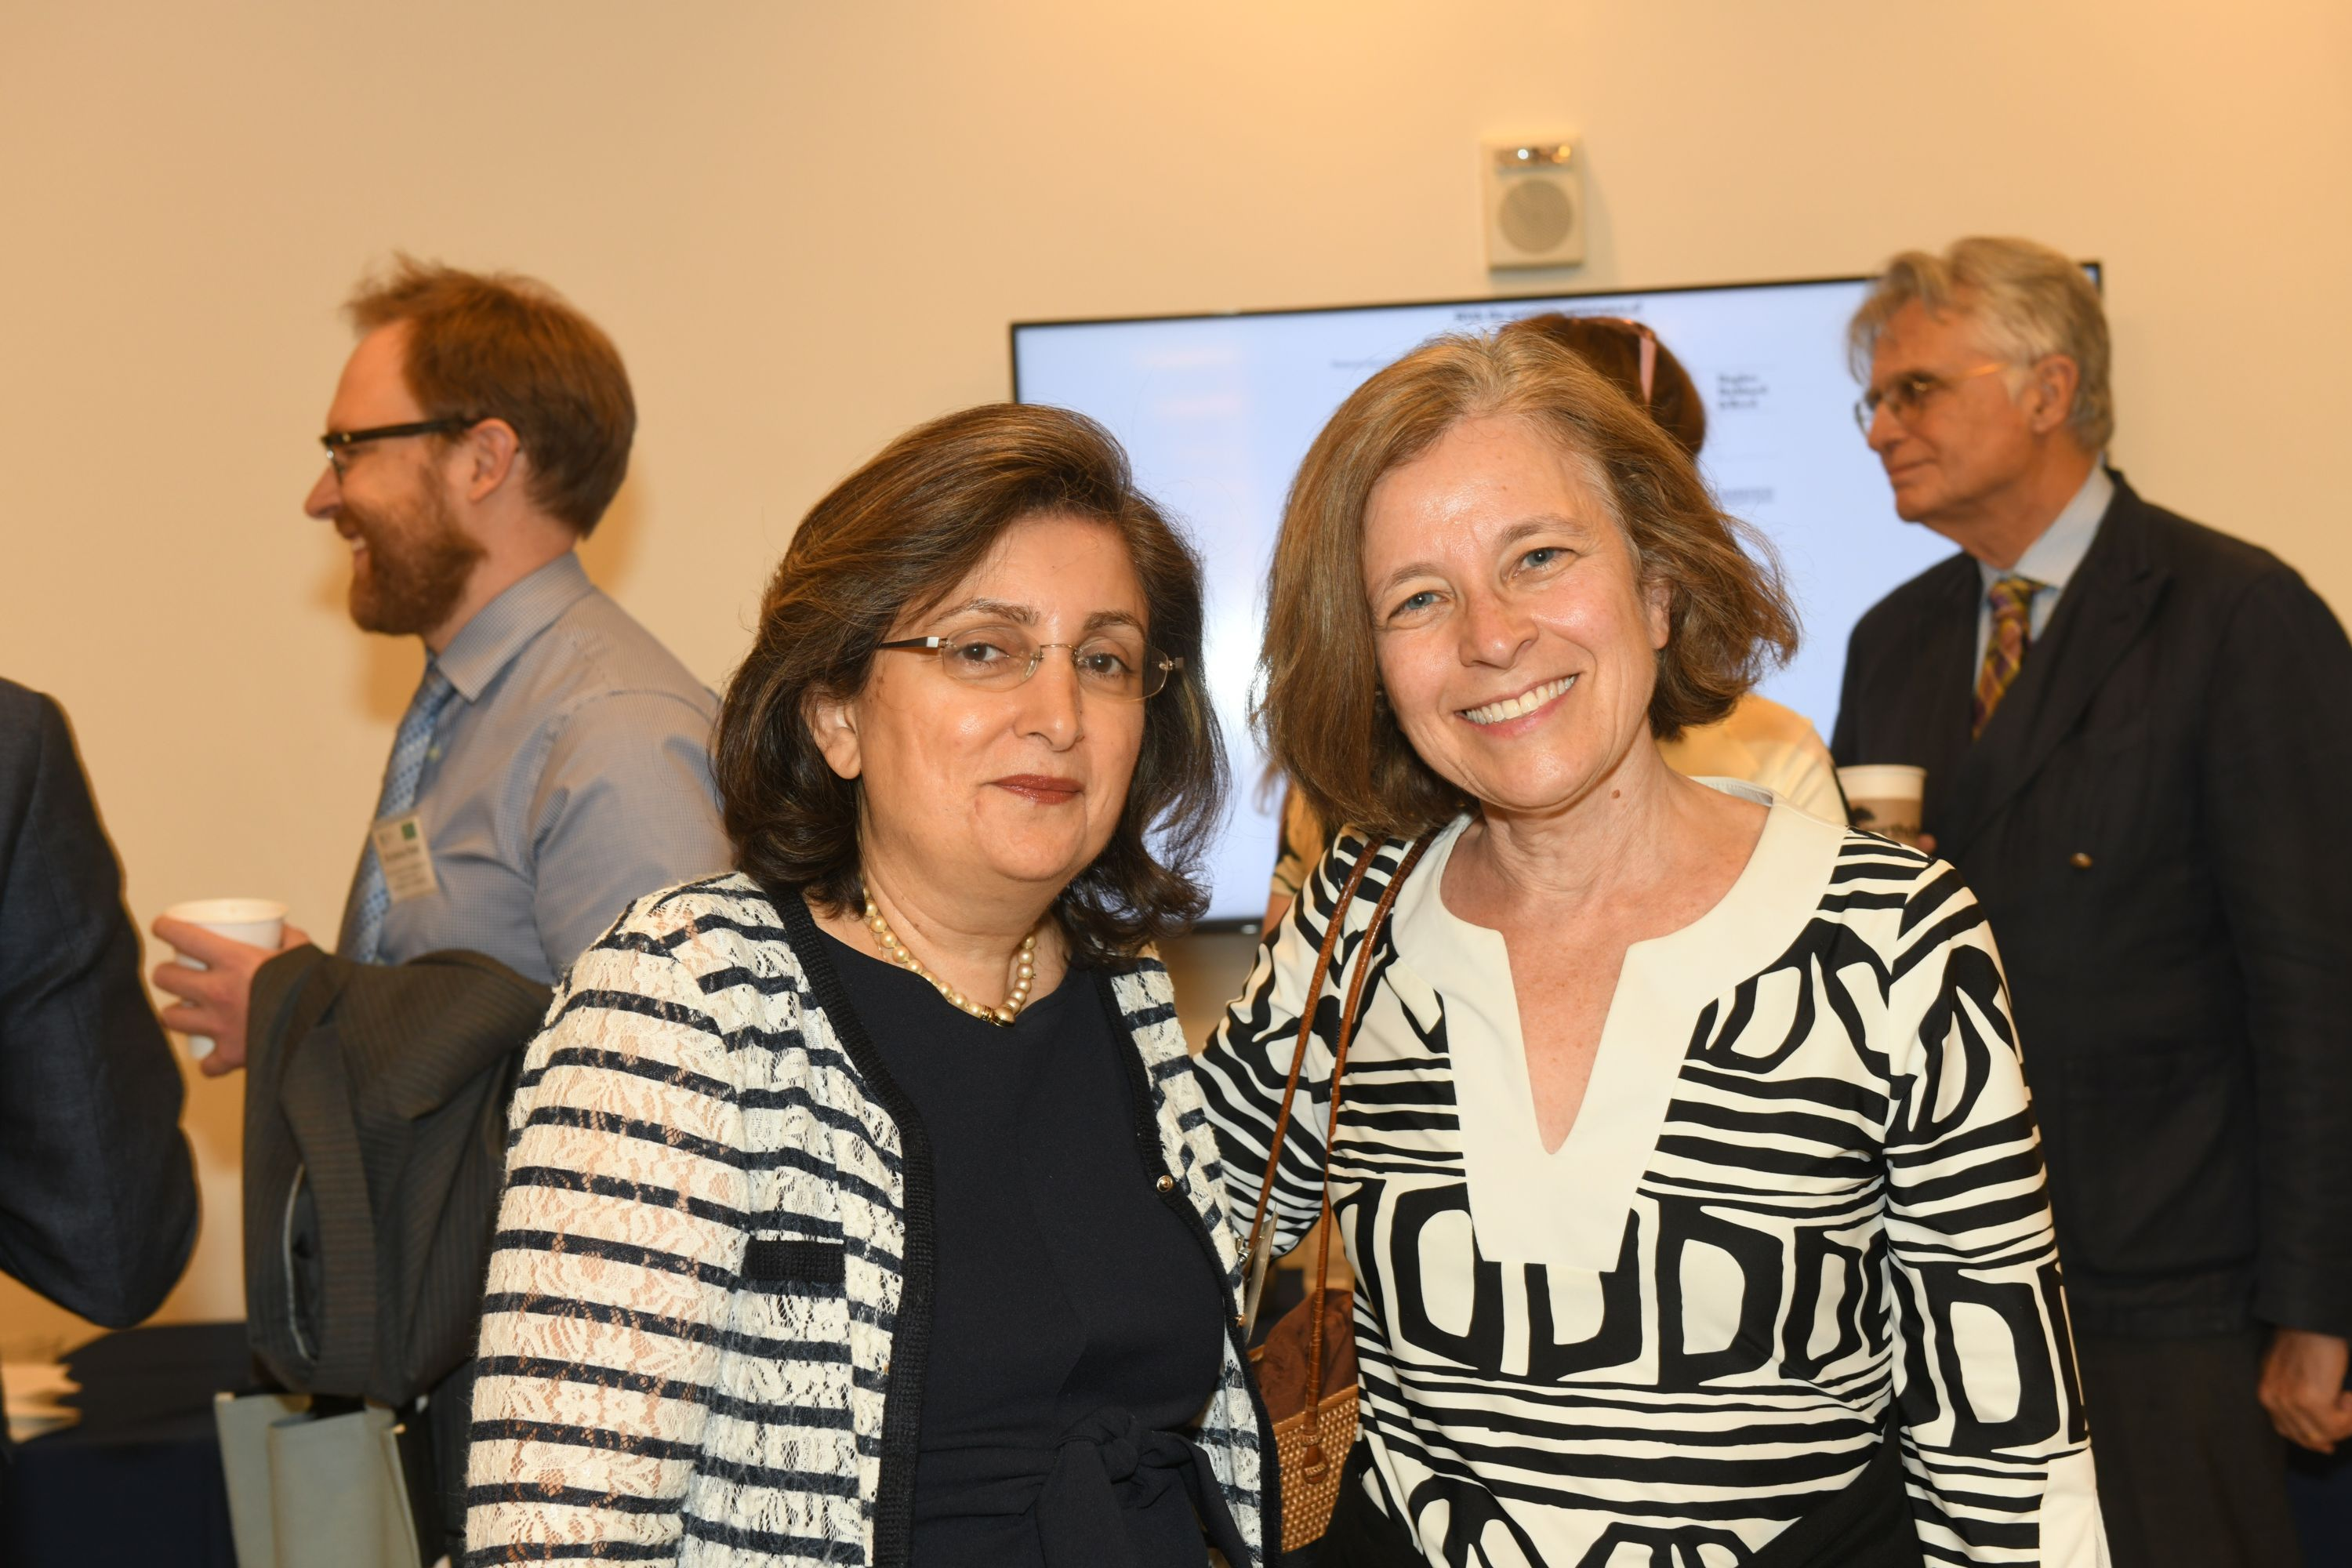 Left to right: Padideh Ala'i, Director of International and Comparative Legal Studies at AUWCL; Sarah Raskin, former United States Deputy Secretary of the Treasury.